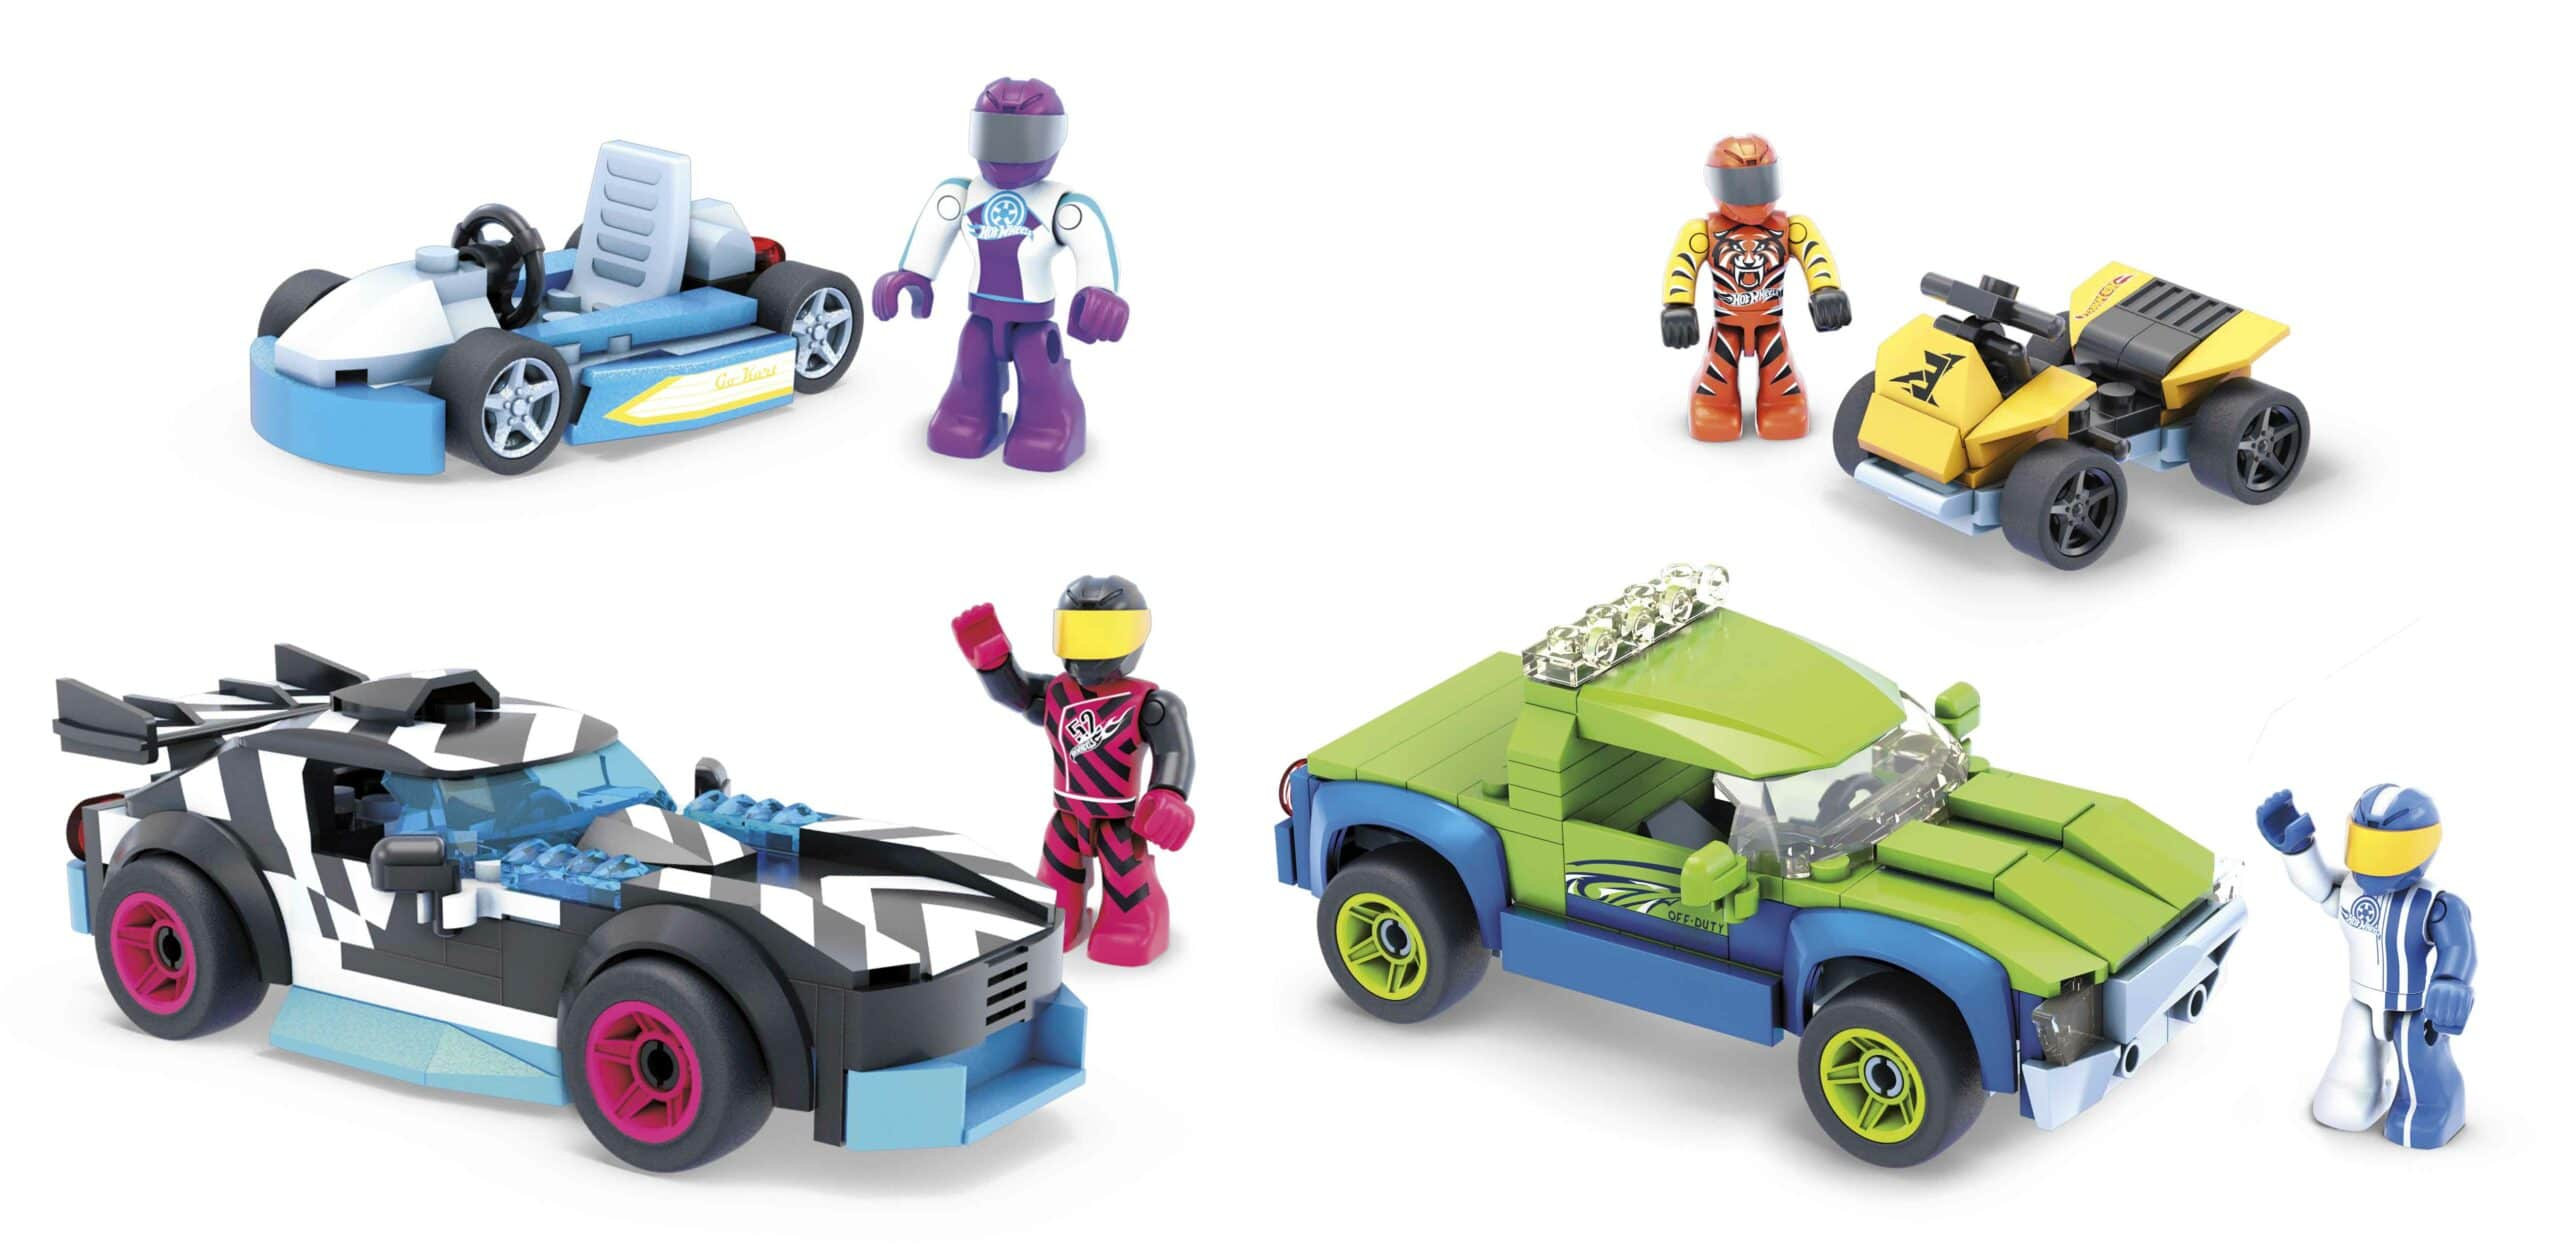 MEGA Construx launches a line of buildable Hot Wheels vehicles 20